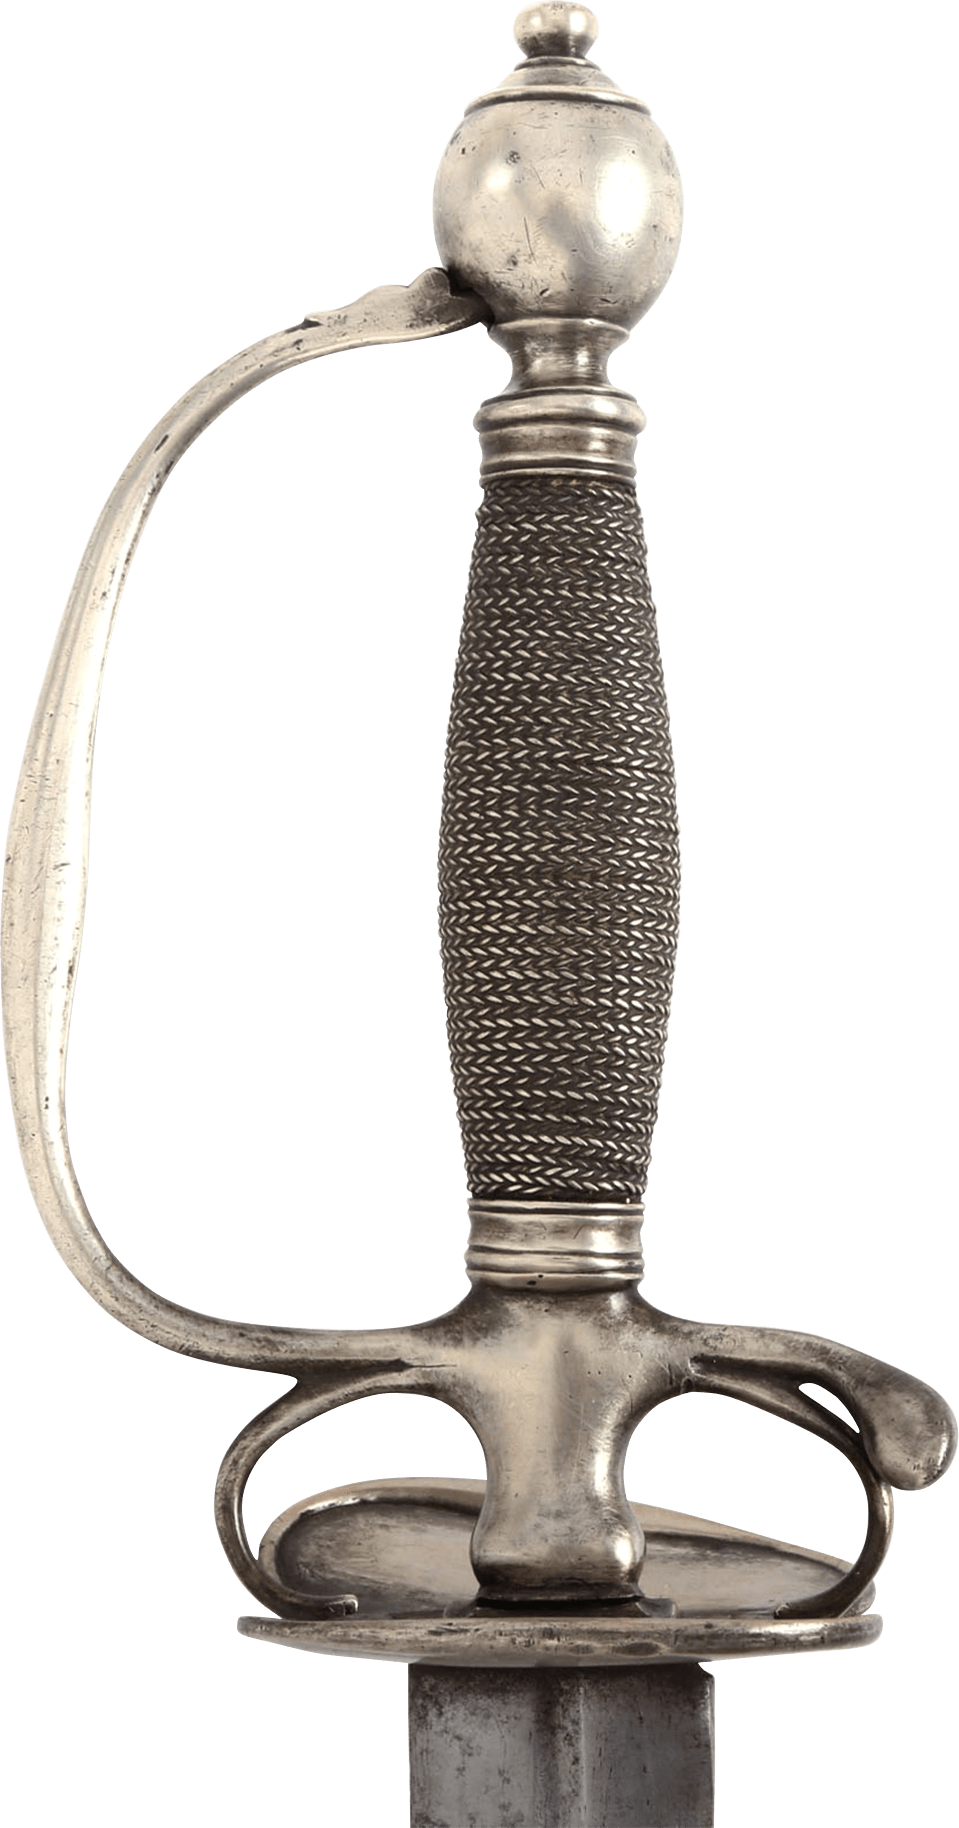 Rare American Silver Hilted Smallsword C.1750 - Product